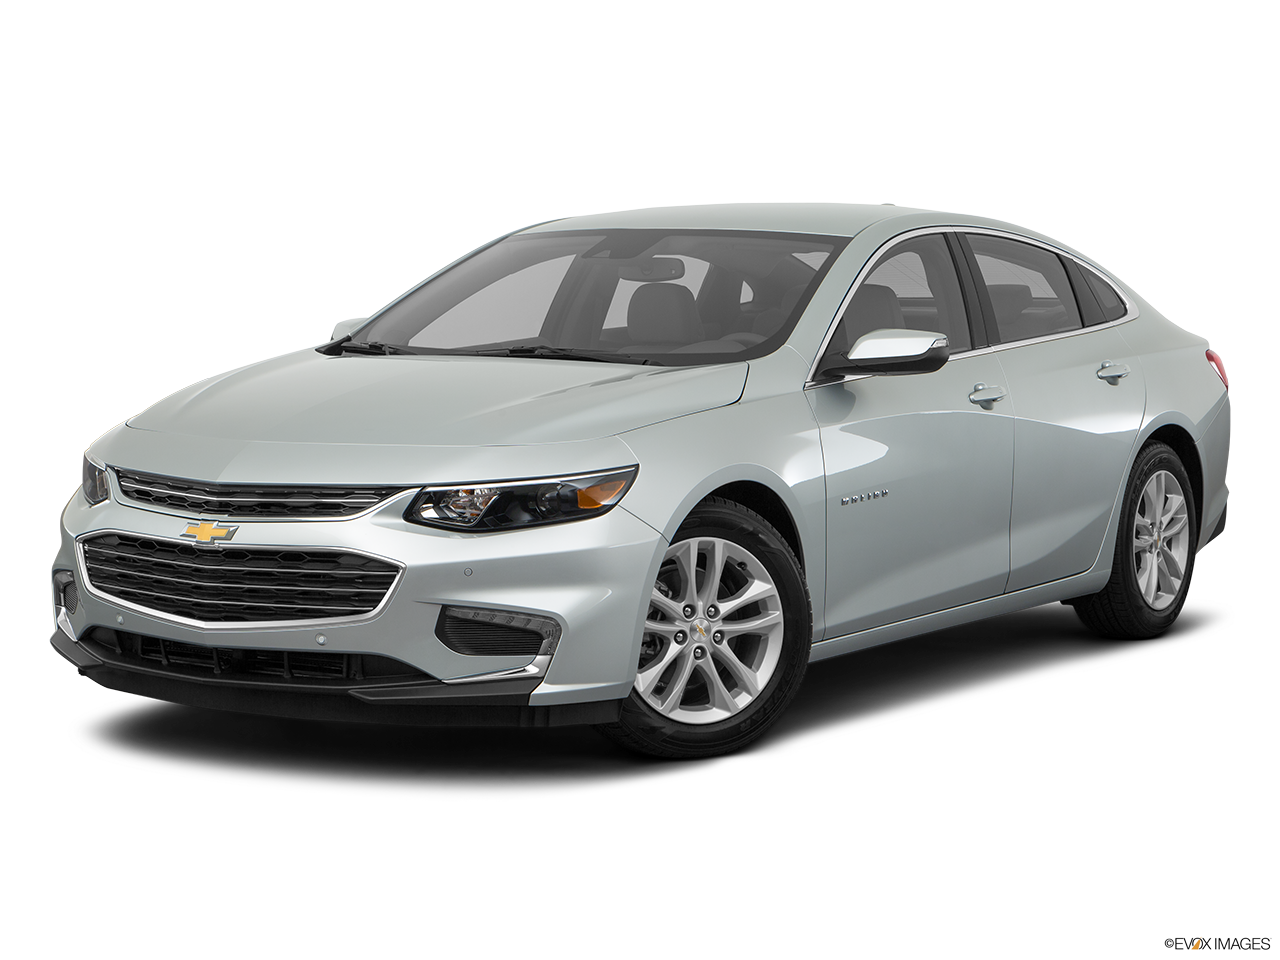 2017 Chevrolet Malibu Hampton Roads Casey 2011 Dodge Avenger Wiring Diagrams Test Drive A At In Newport News